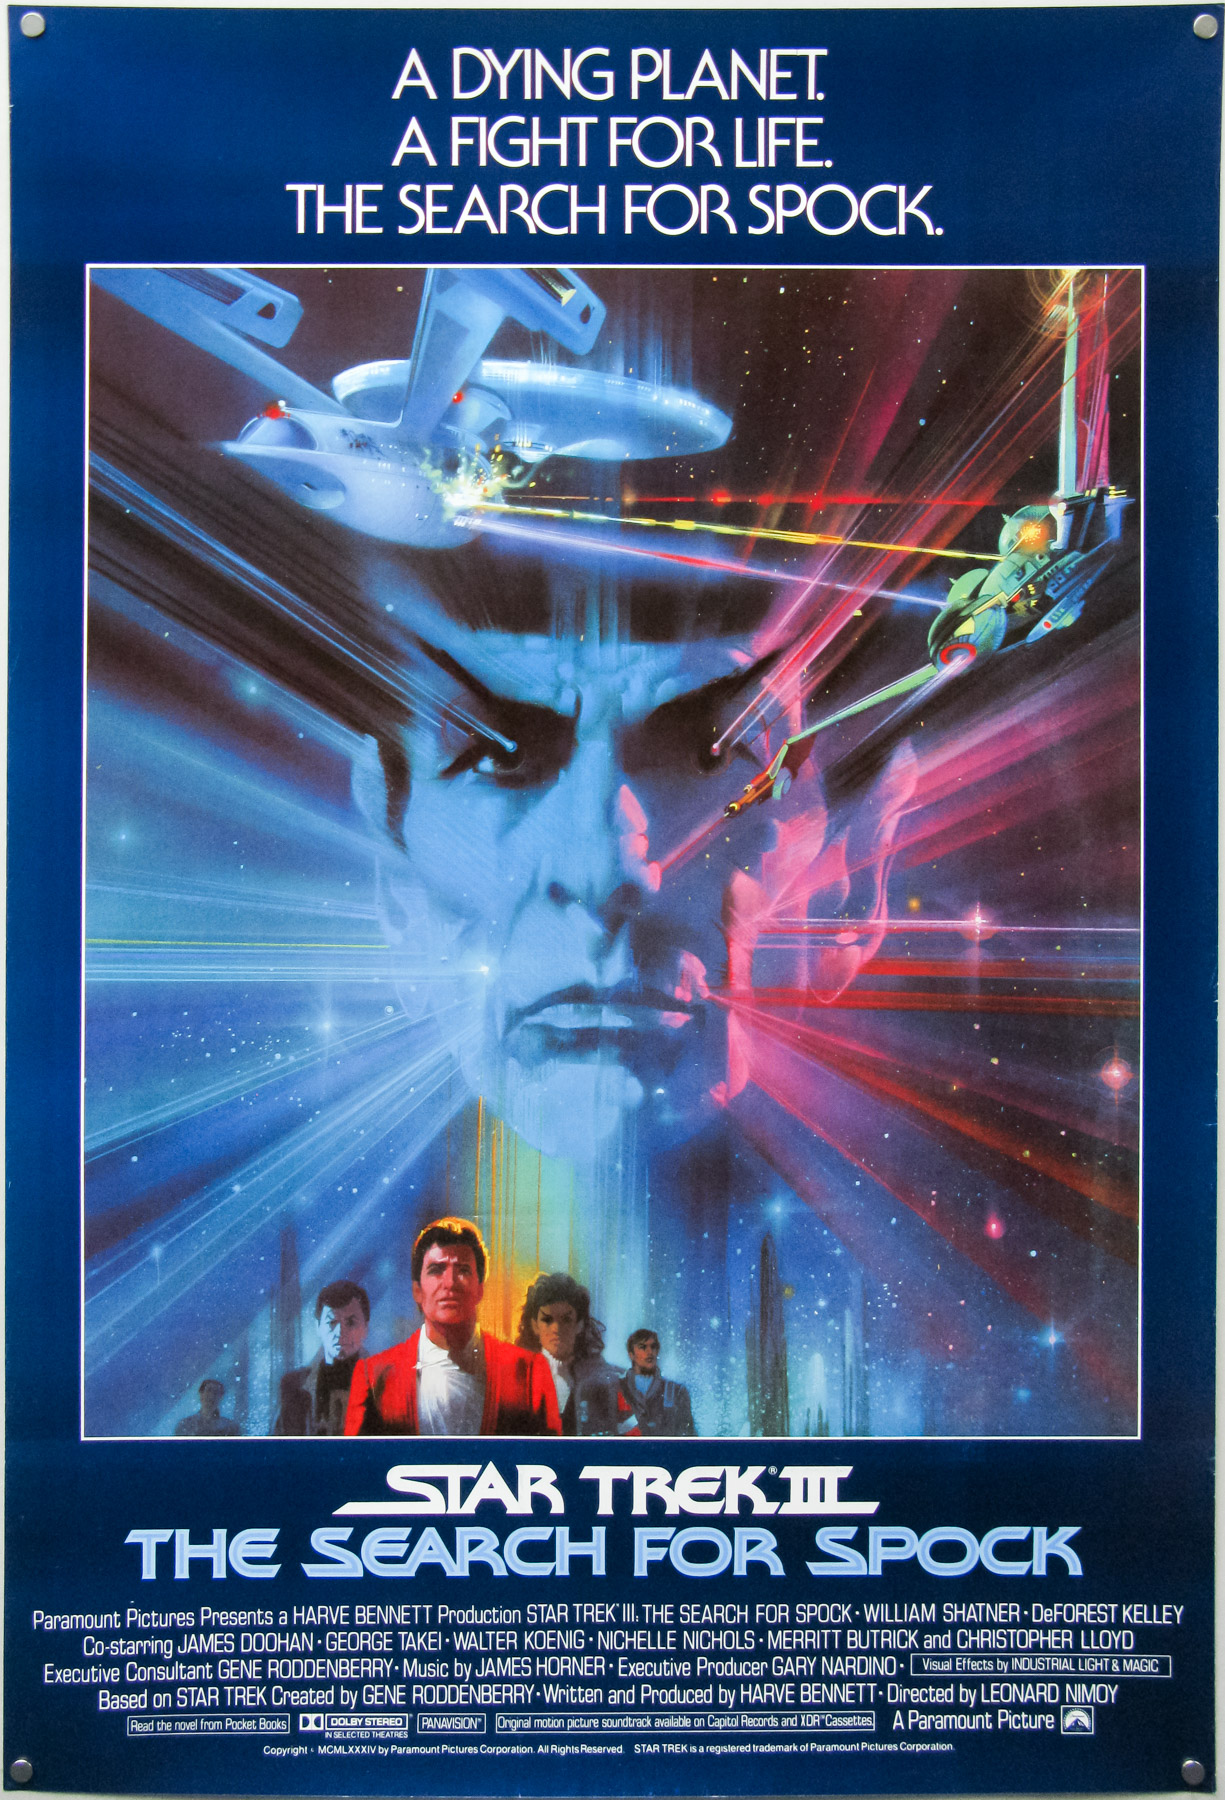 The international one sheet for Star Trek III - The Search For Spock with artwork by the late Bob Peak.